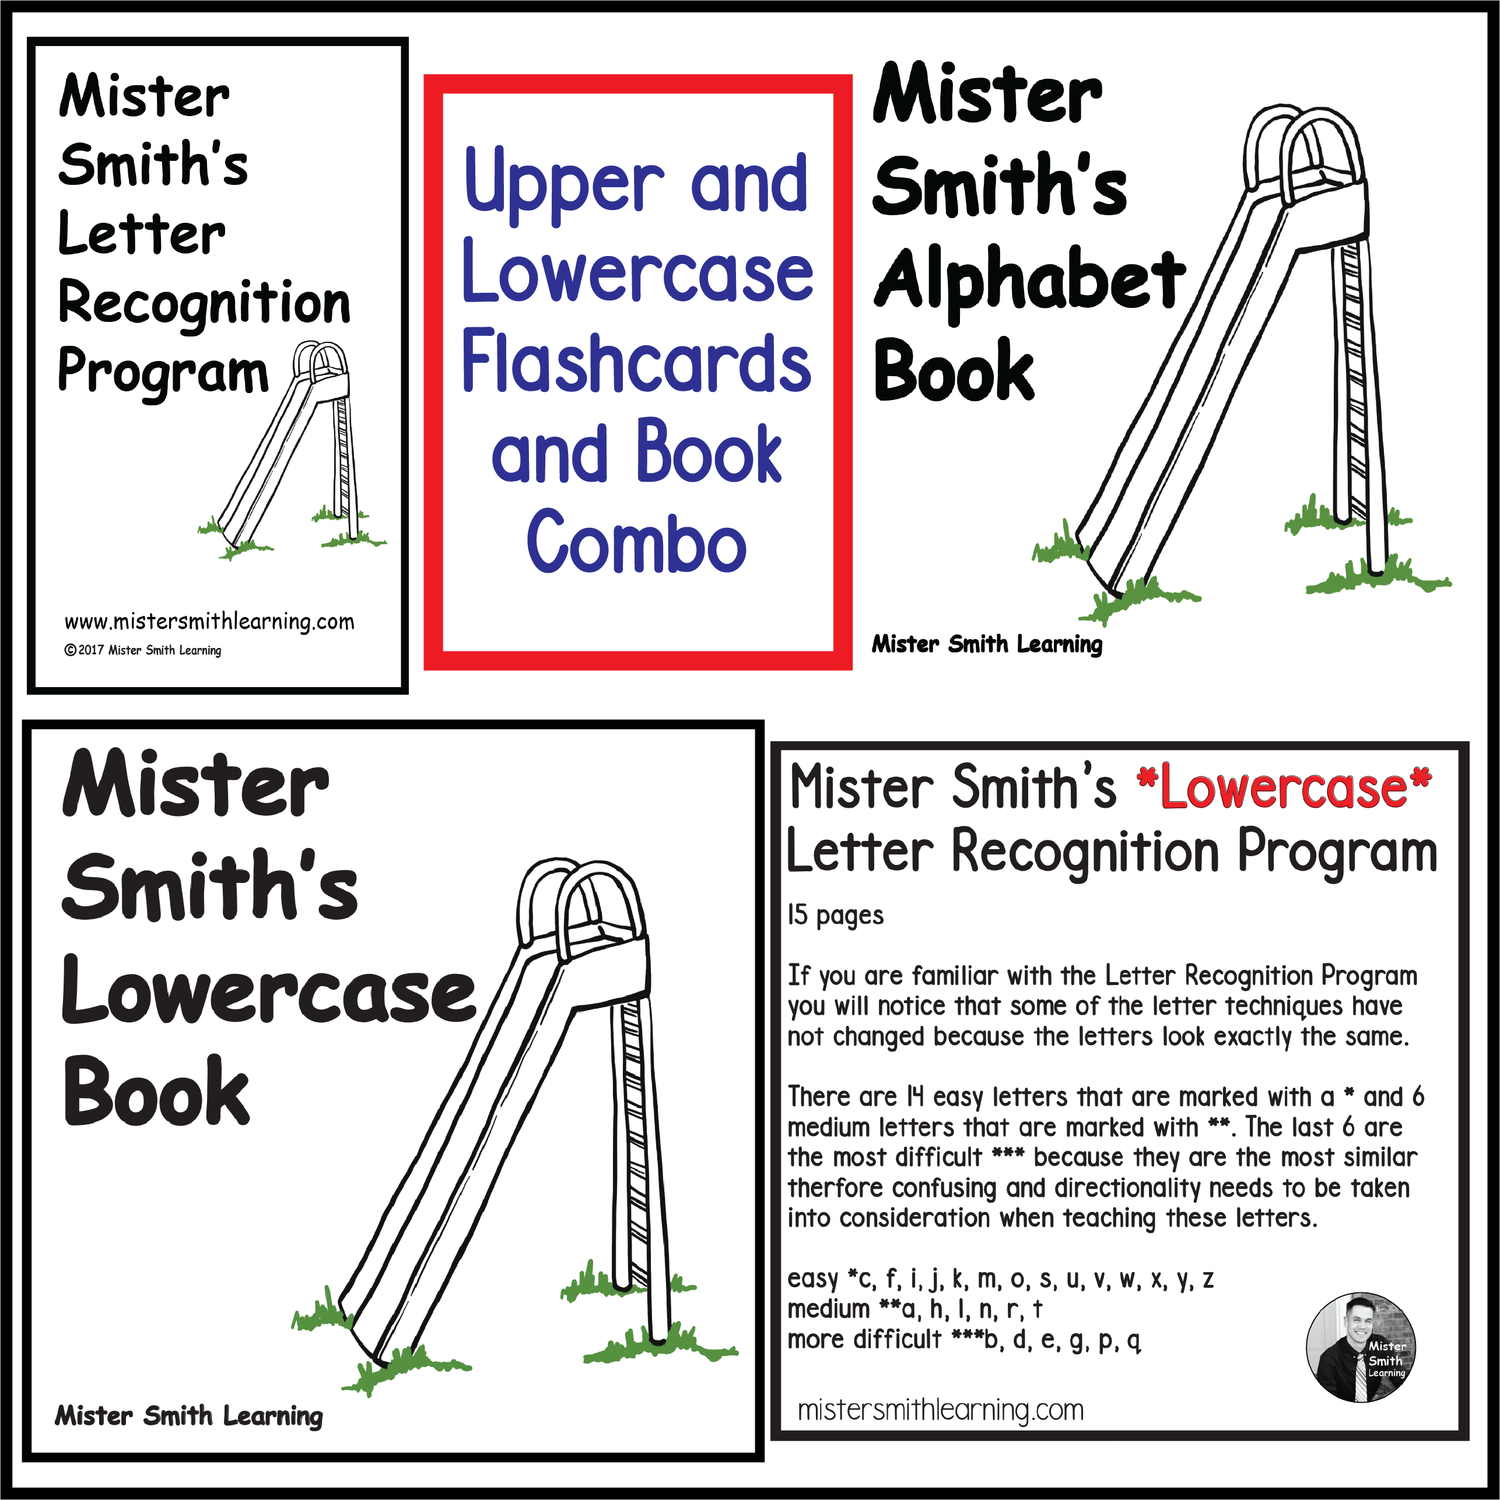 5 Reasons Why The Mister Smith Letter Recognition Program